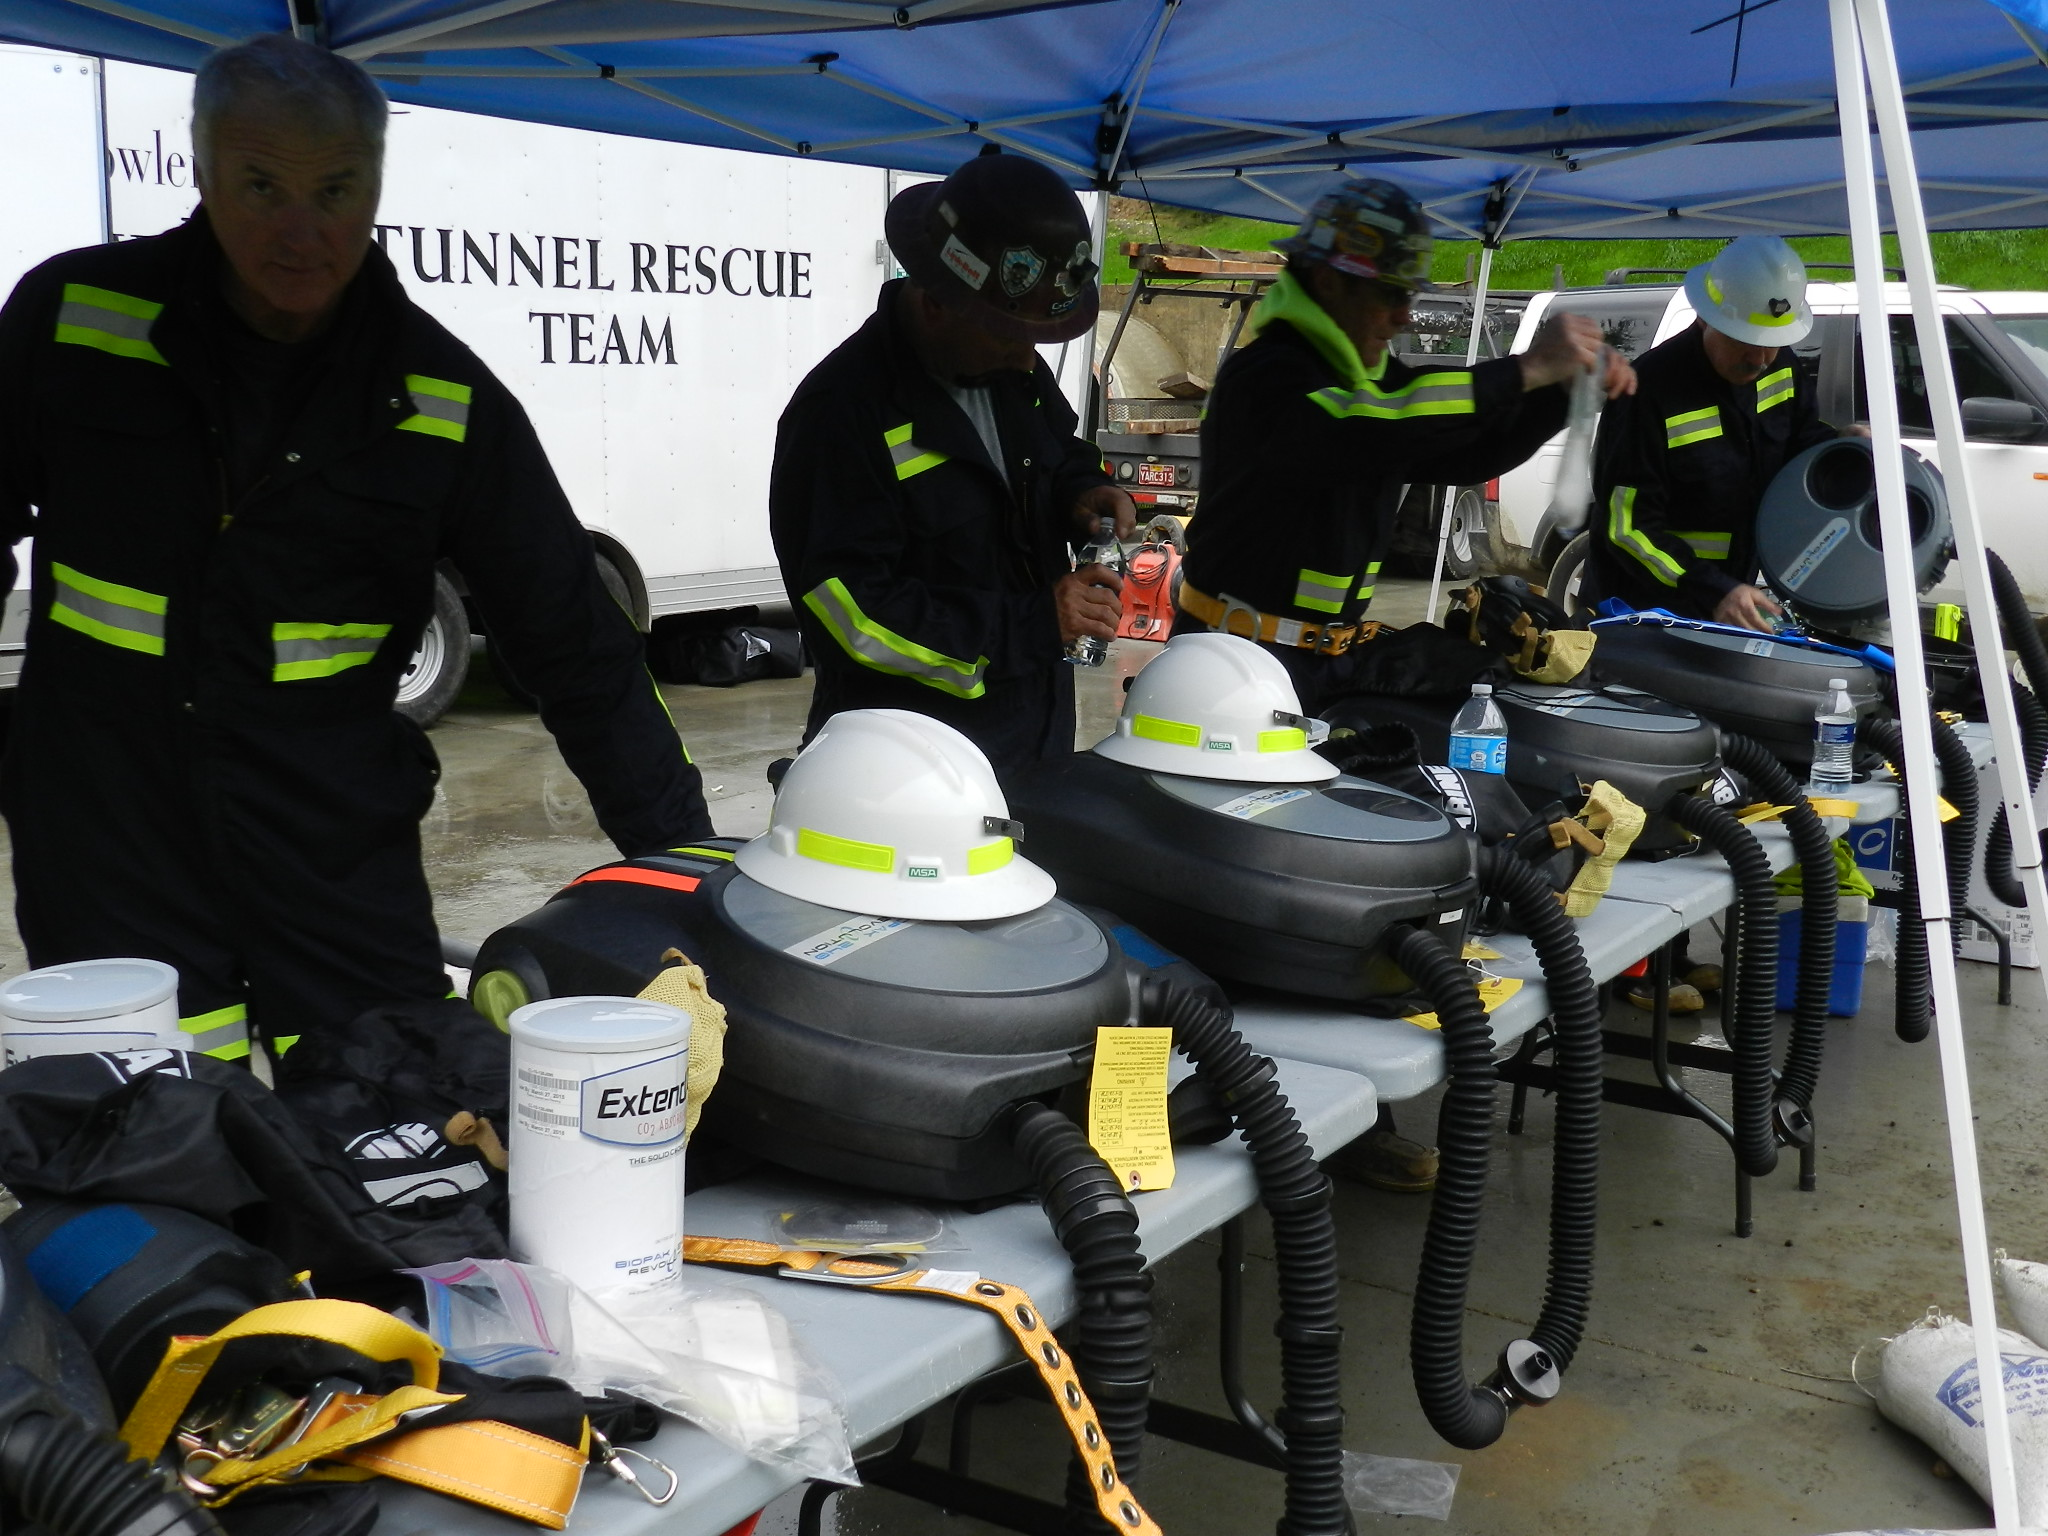 Tim Conley, left, and other members of the James W. Fowler Co. tunnel rescue team meticulously and methodically check their equipment before heading into the smoke-filled tunnel.